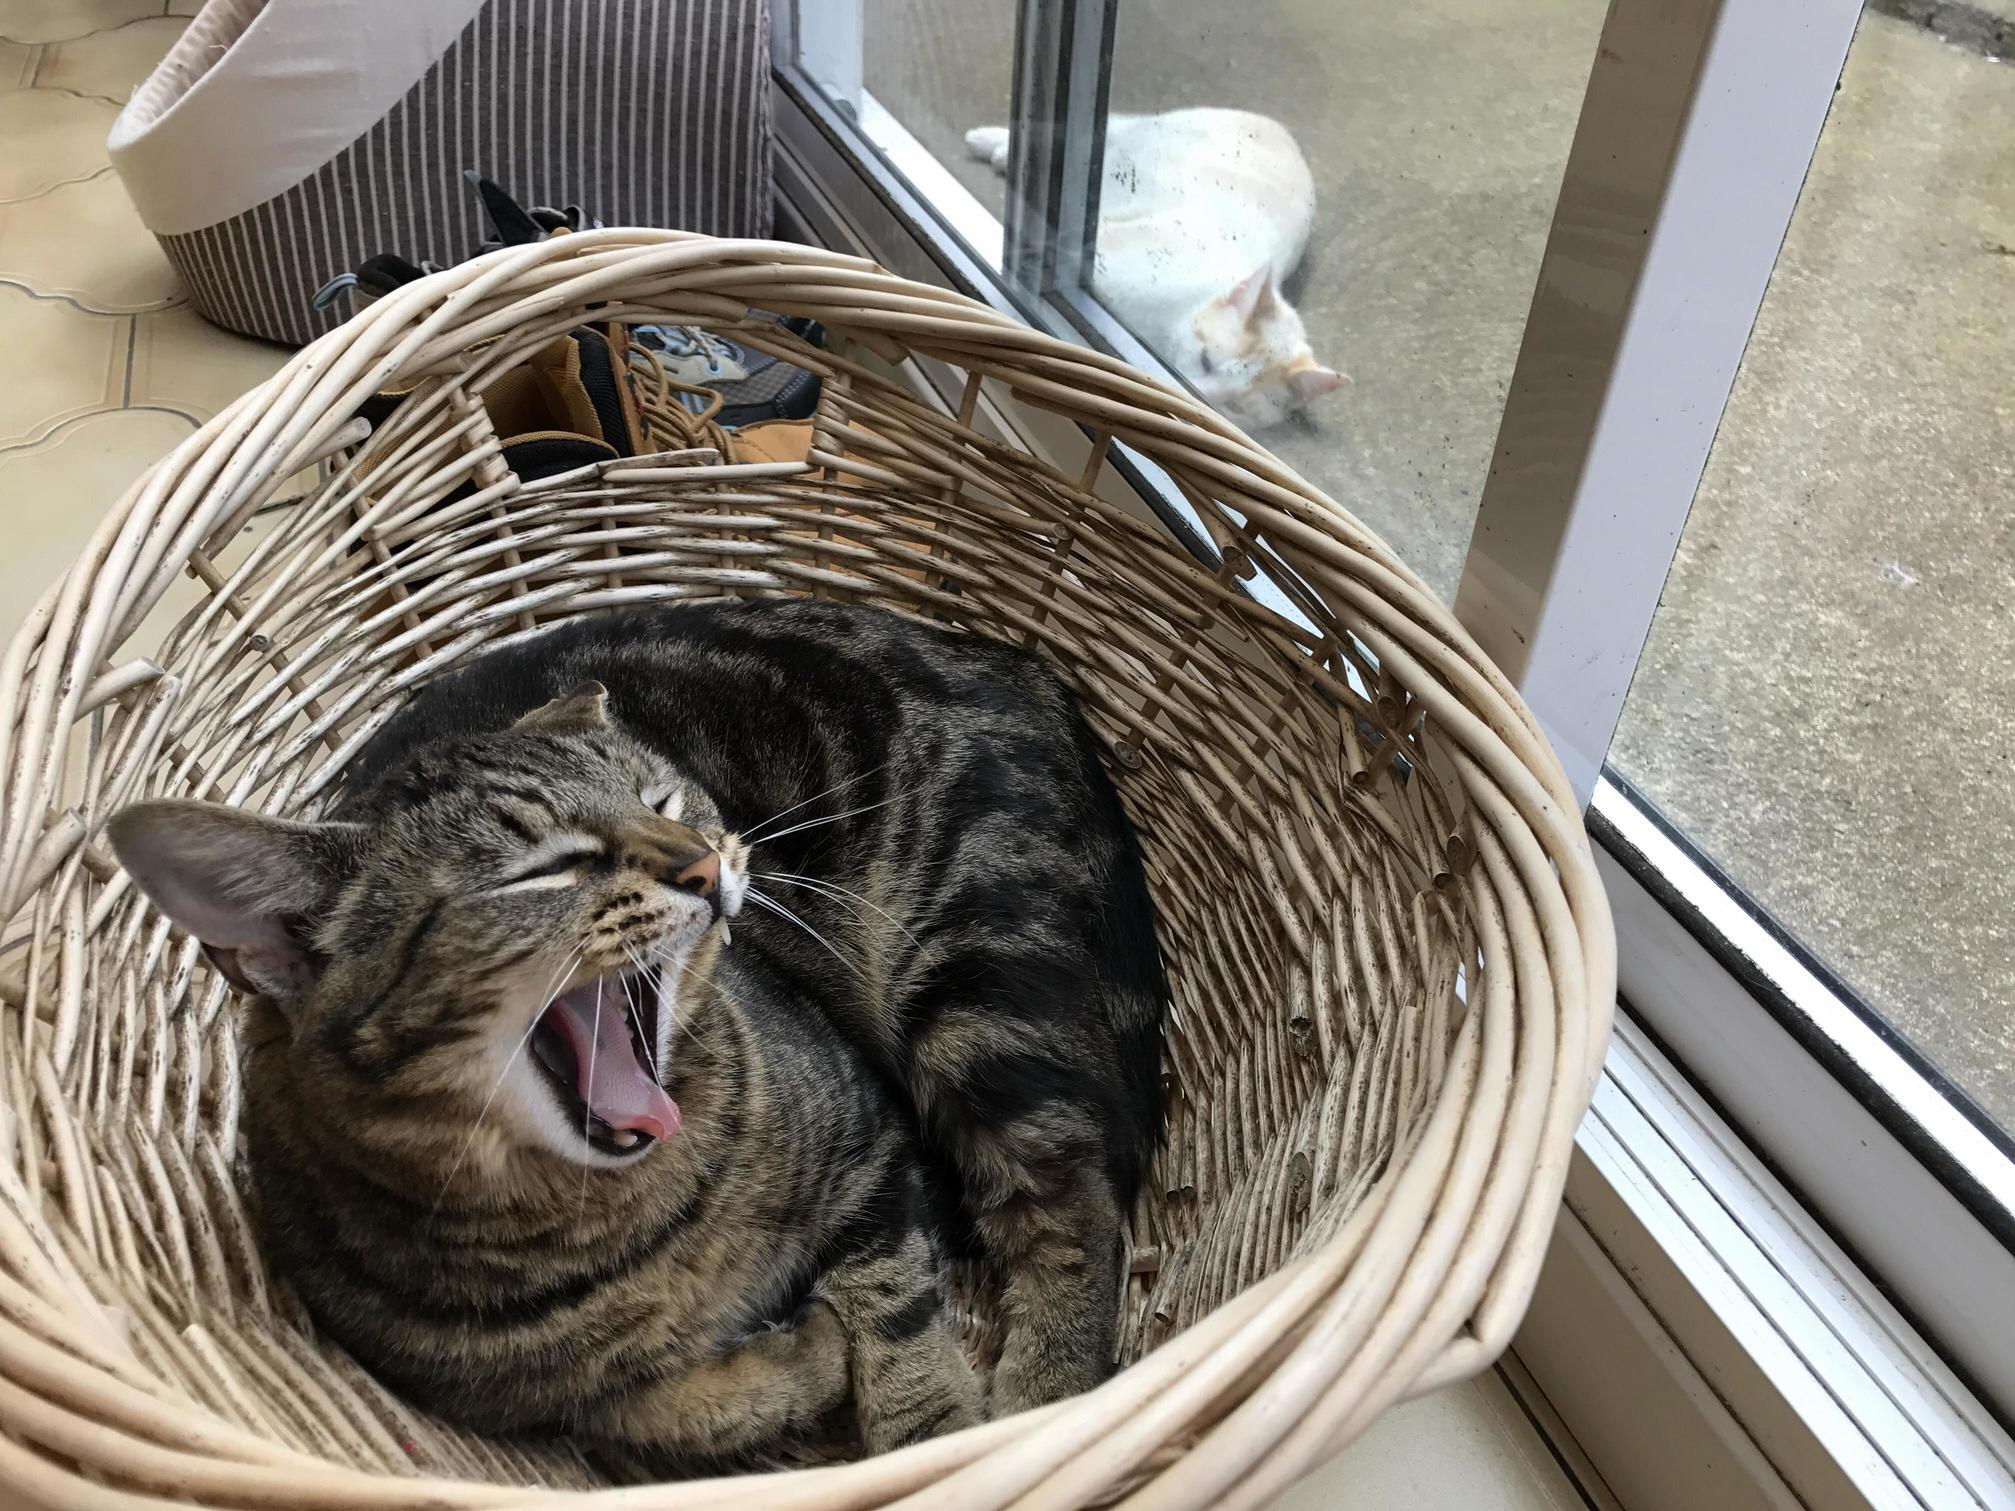 Cute yawn or vicious roar